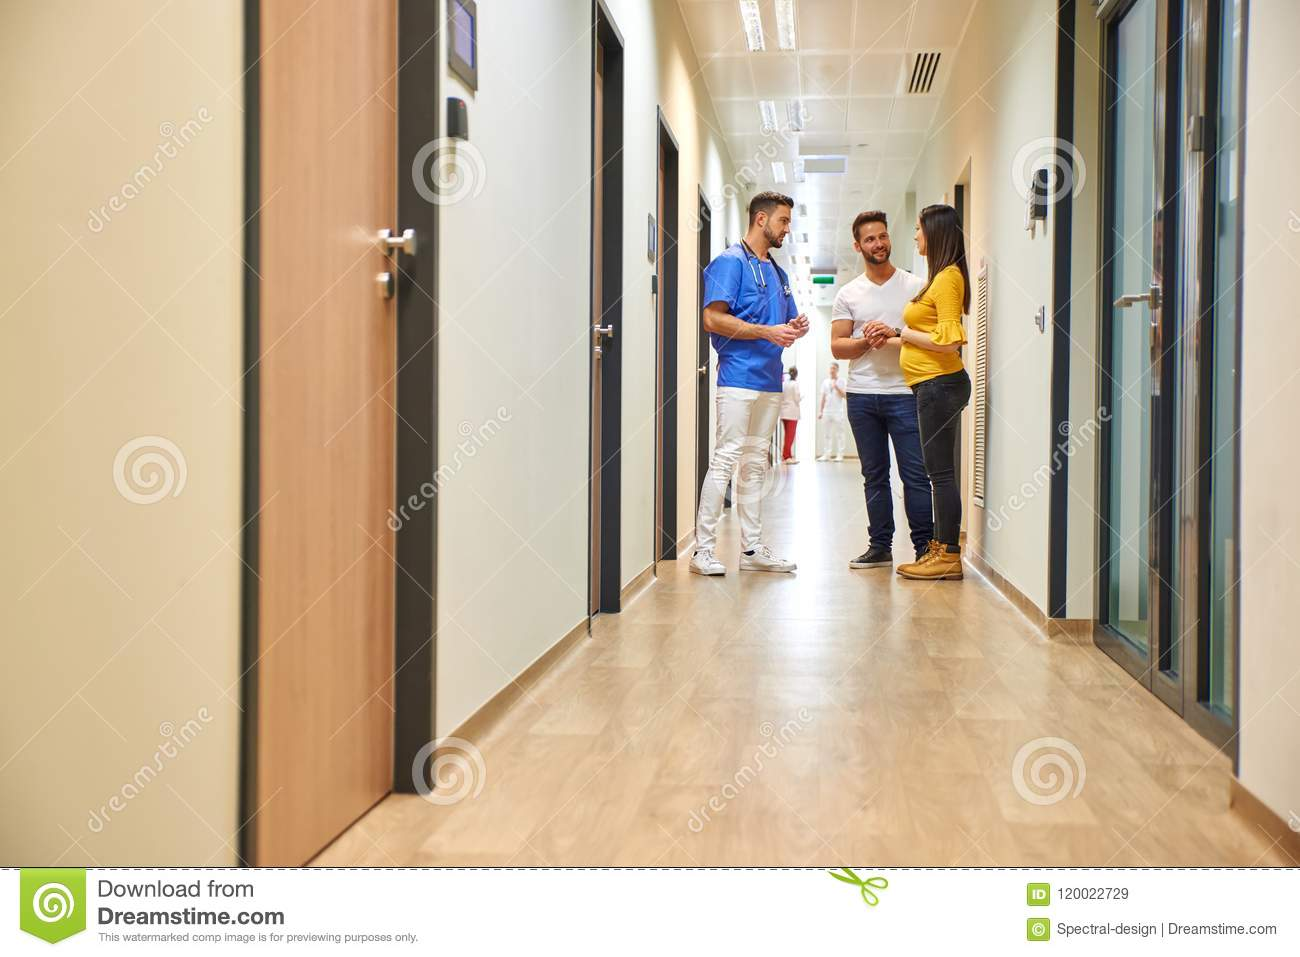 A doctor and the future parents on the hallway